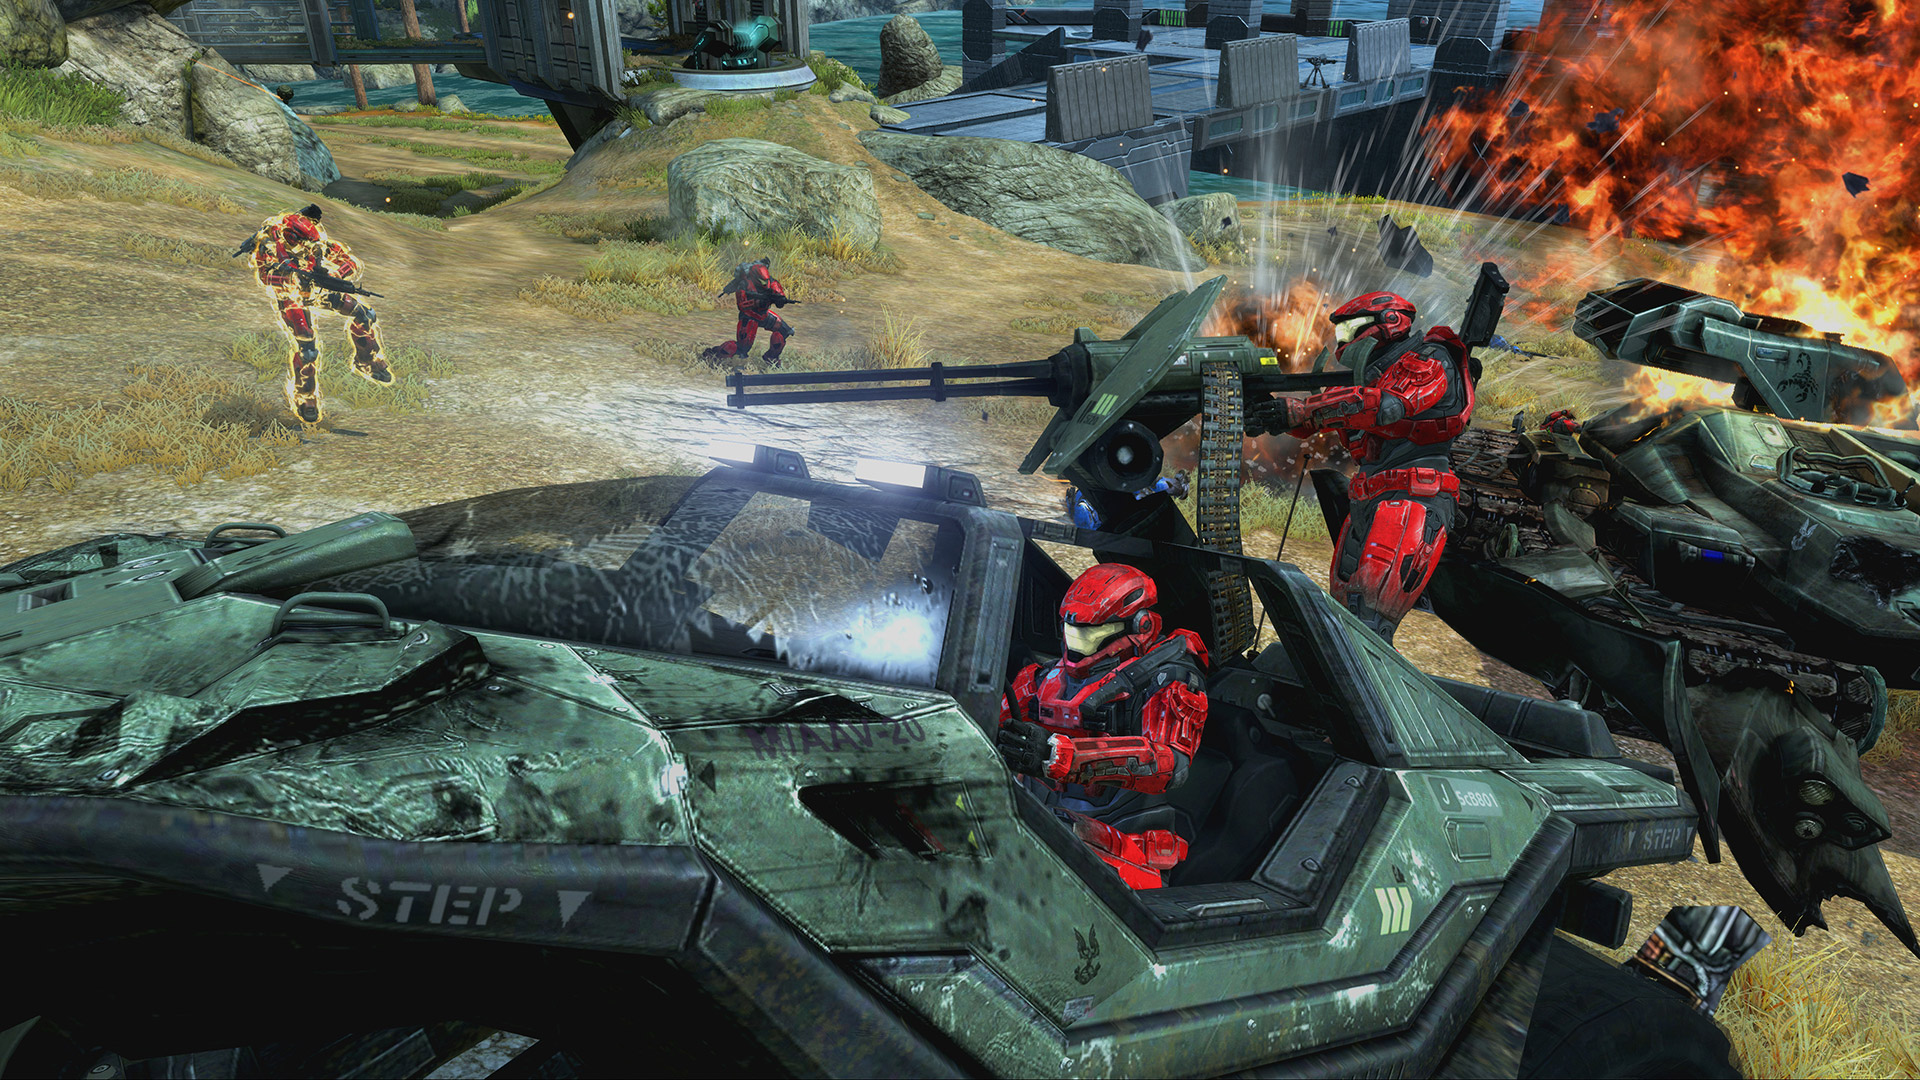 Halo: The Master Chief Collection is climbing up Steam thanks to today's Halo: Reach PC launch